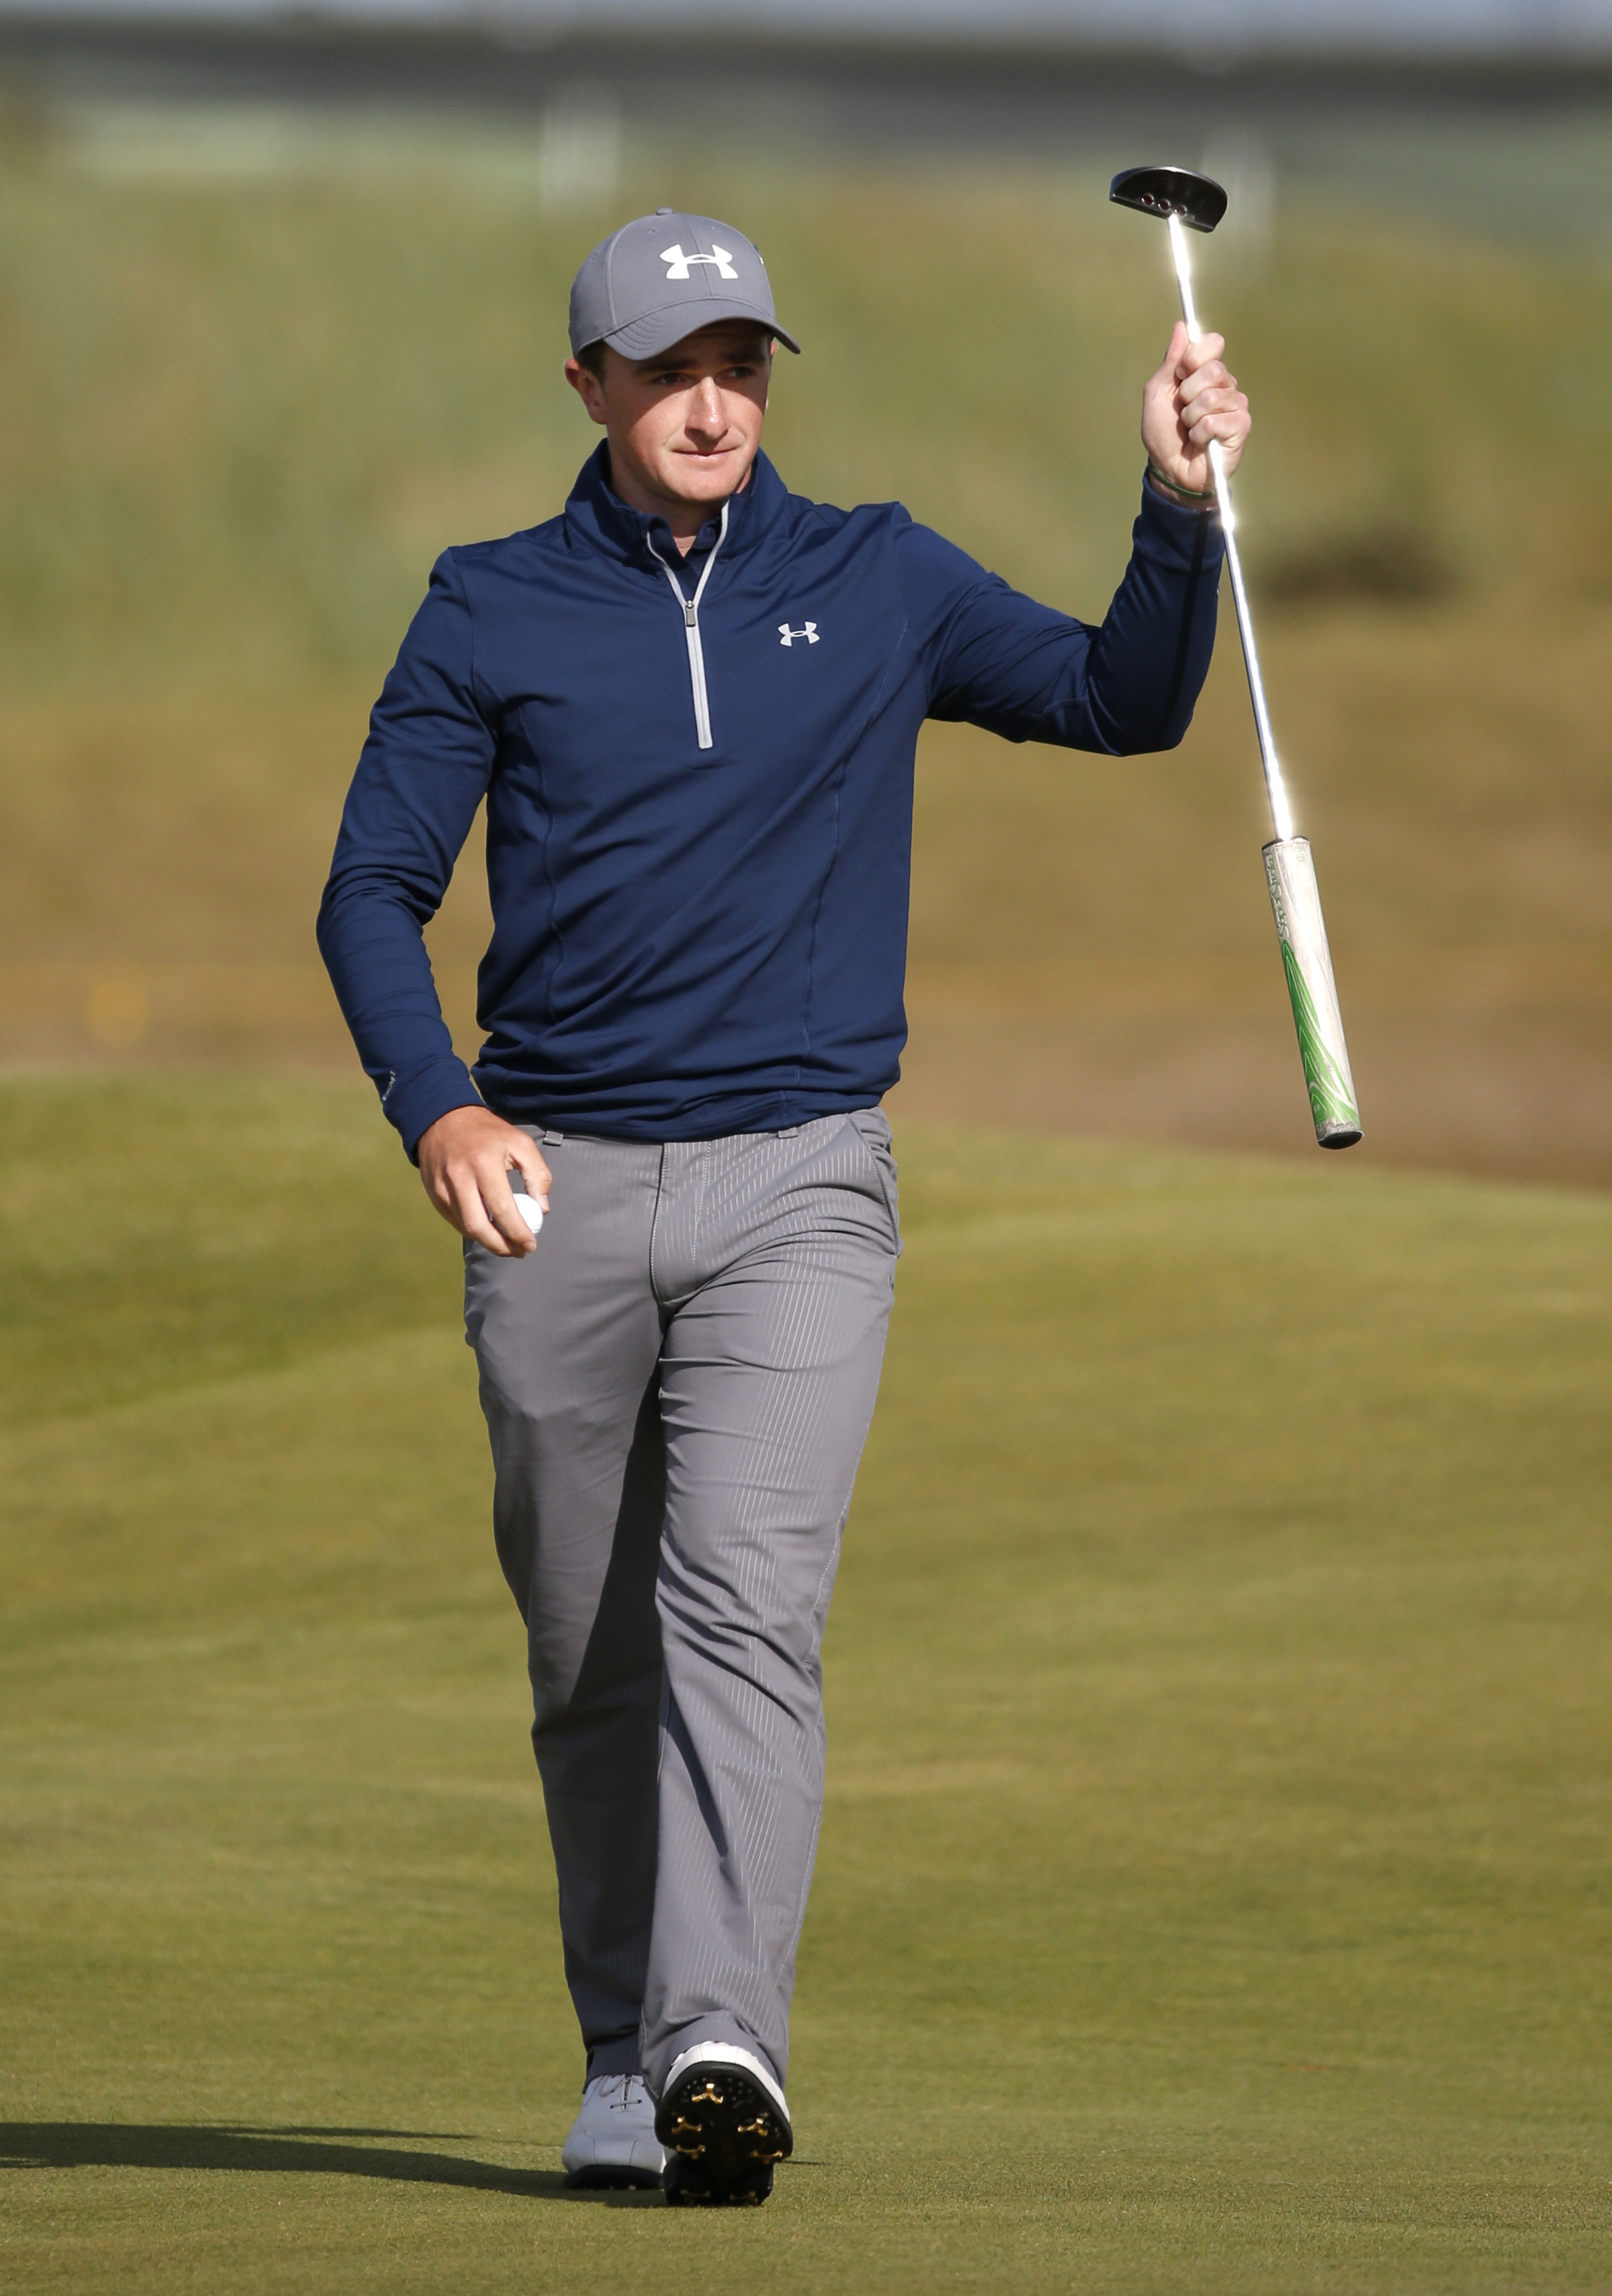 Ireland's Paul Dunne gestures after a birdie on the 15th during the third round at the British Open Golf Championship at the Old Course, St. Andrews, Scotland, Sunday, July 19, 2015. (AP Photo/Jon